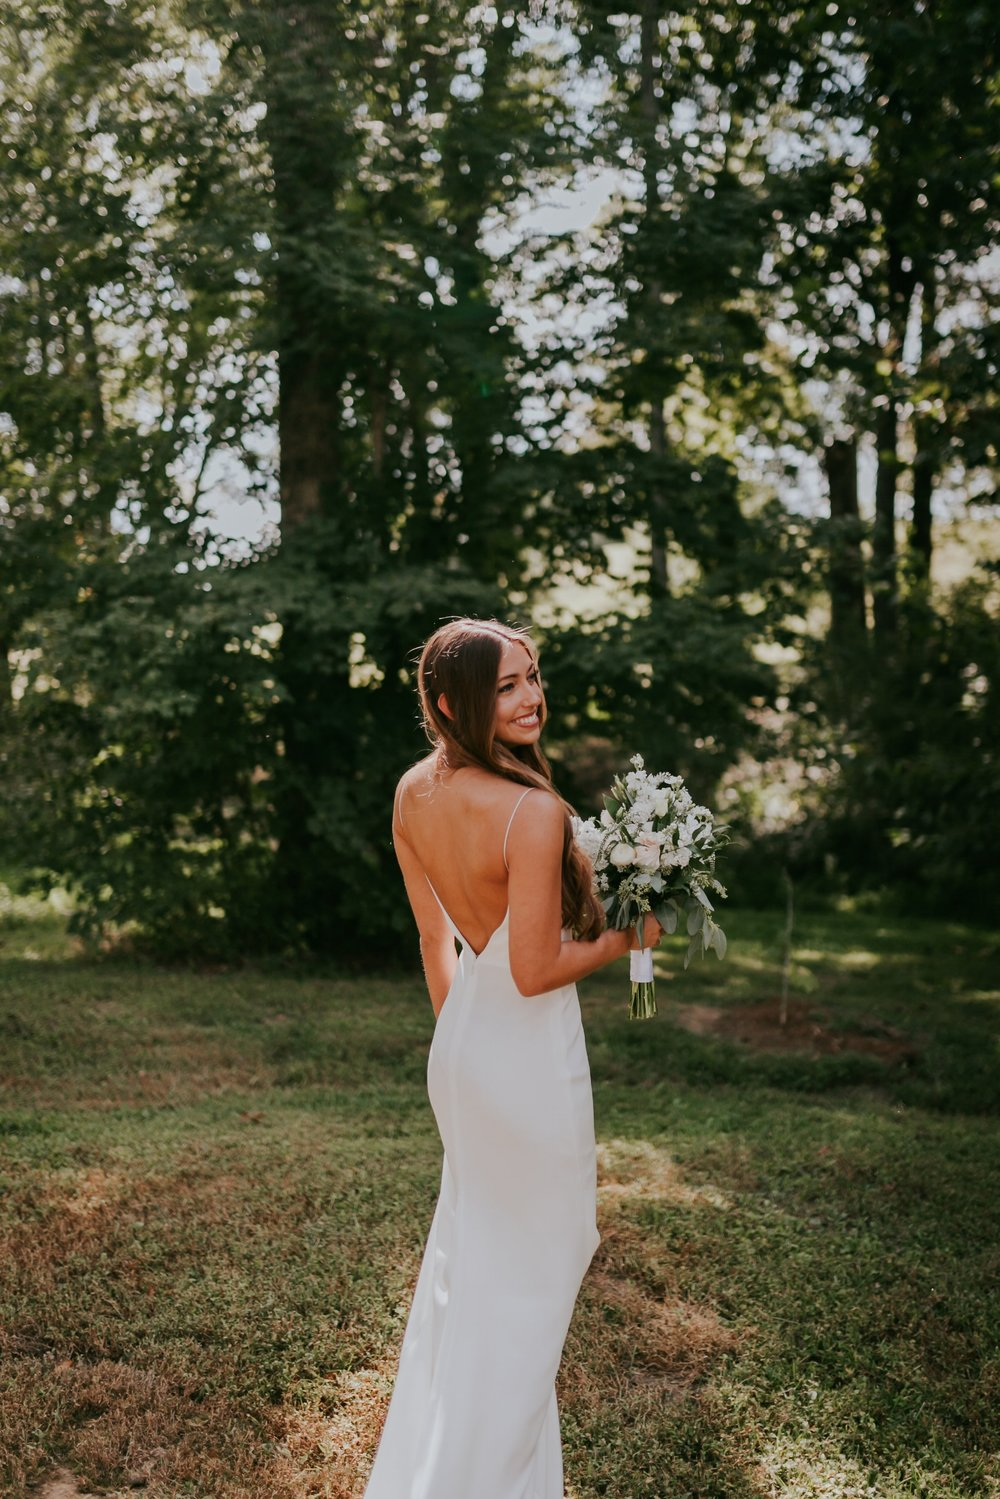 a46a3046bb687 We are completely smitten over these photos of our Nashville bride Corey  and her Alexandra Grecco wedding gown!!! Her wedding dress had a clean, ...